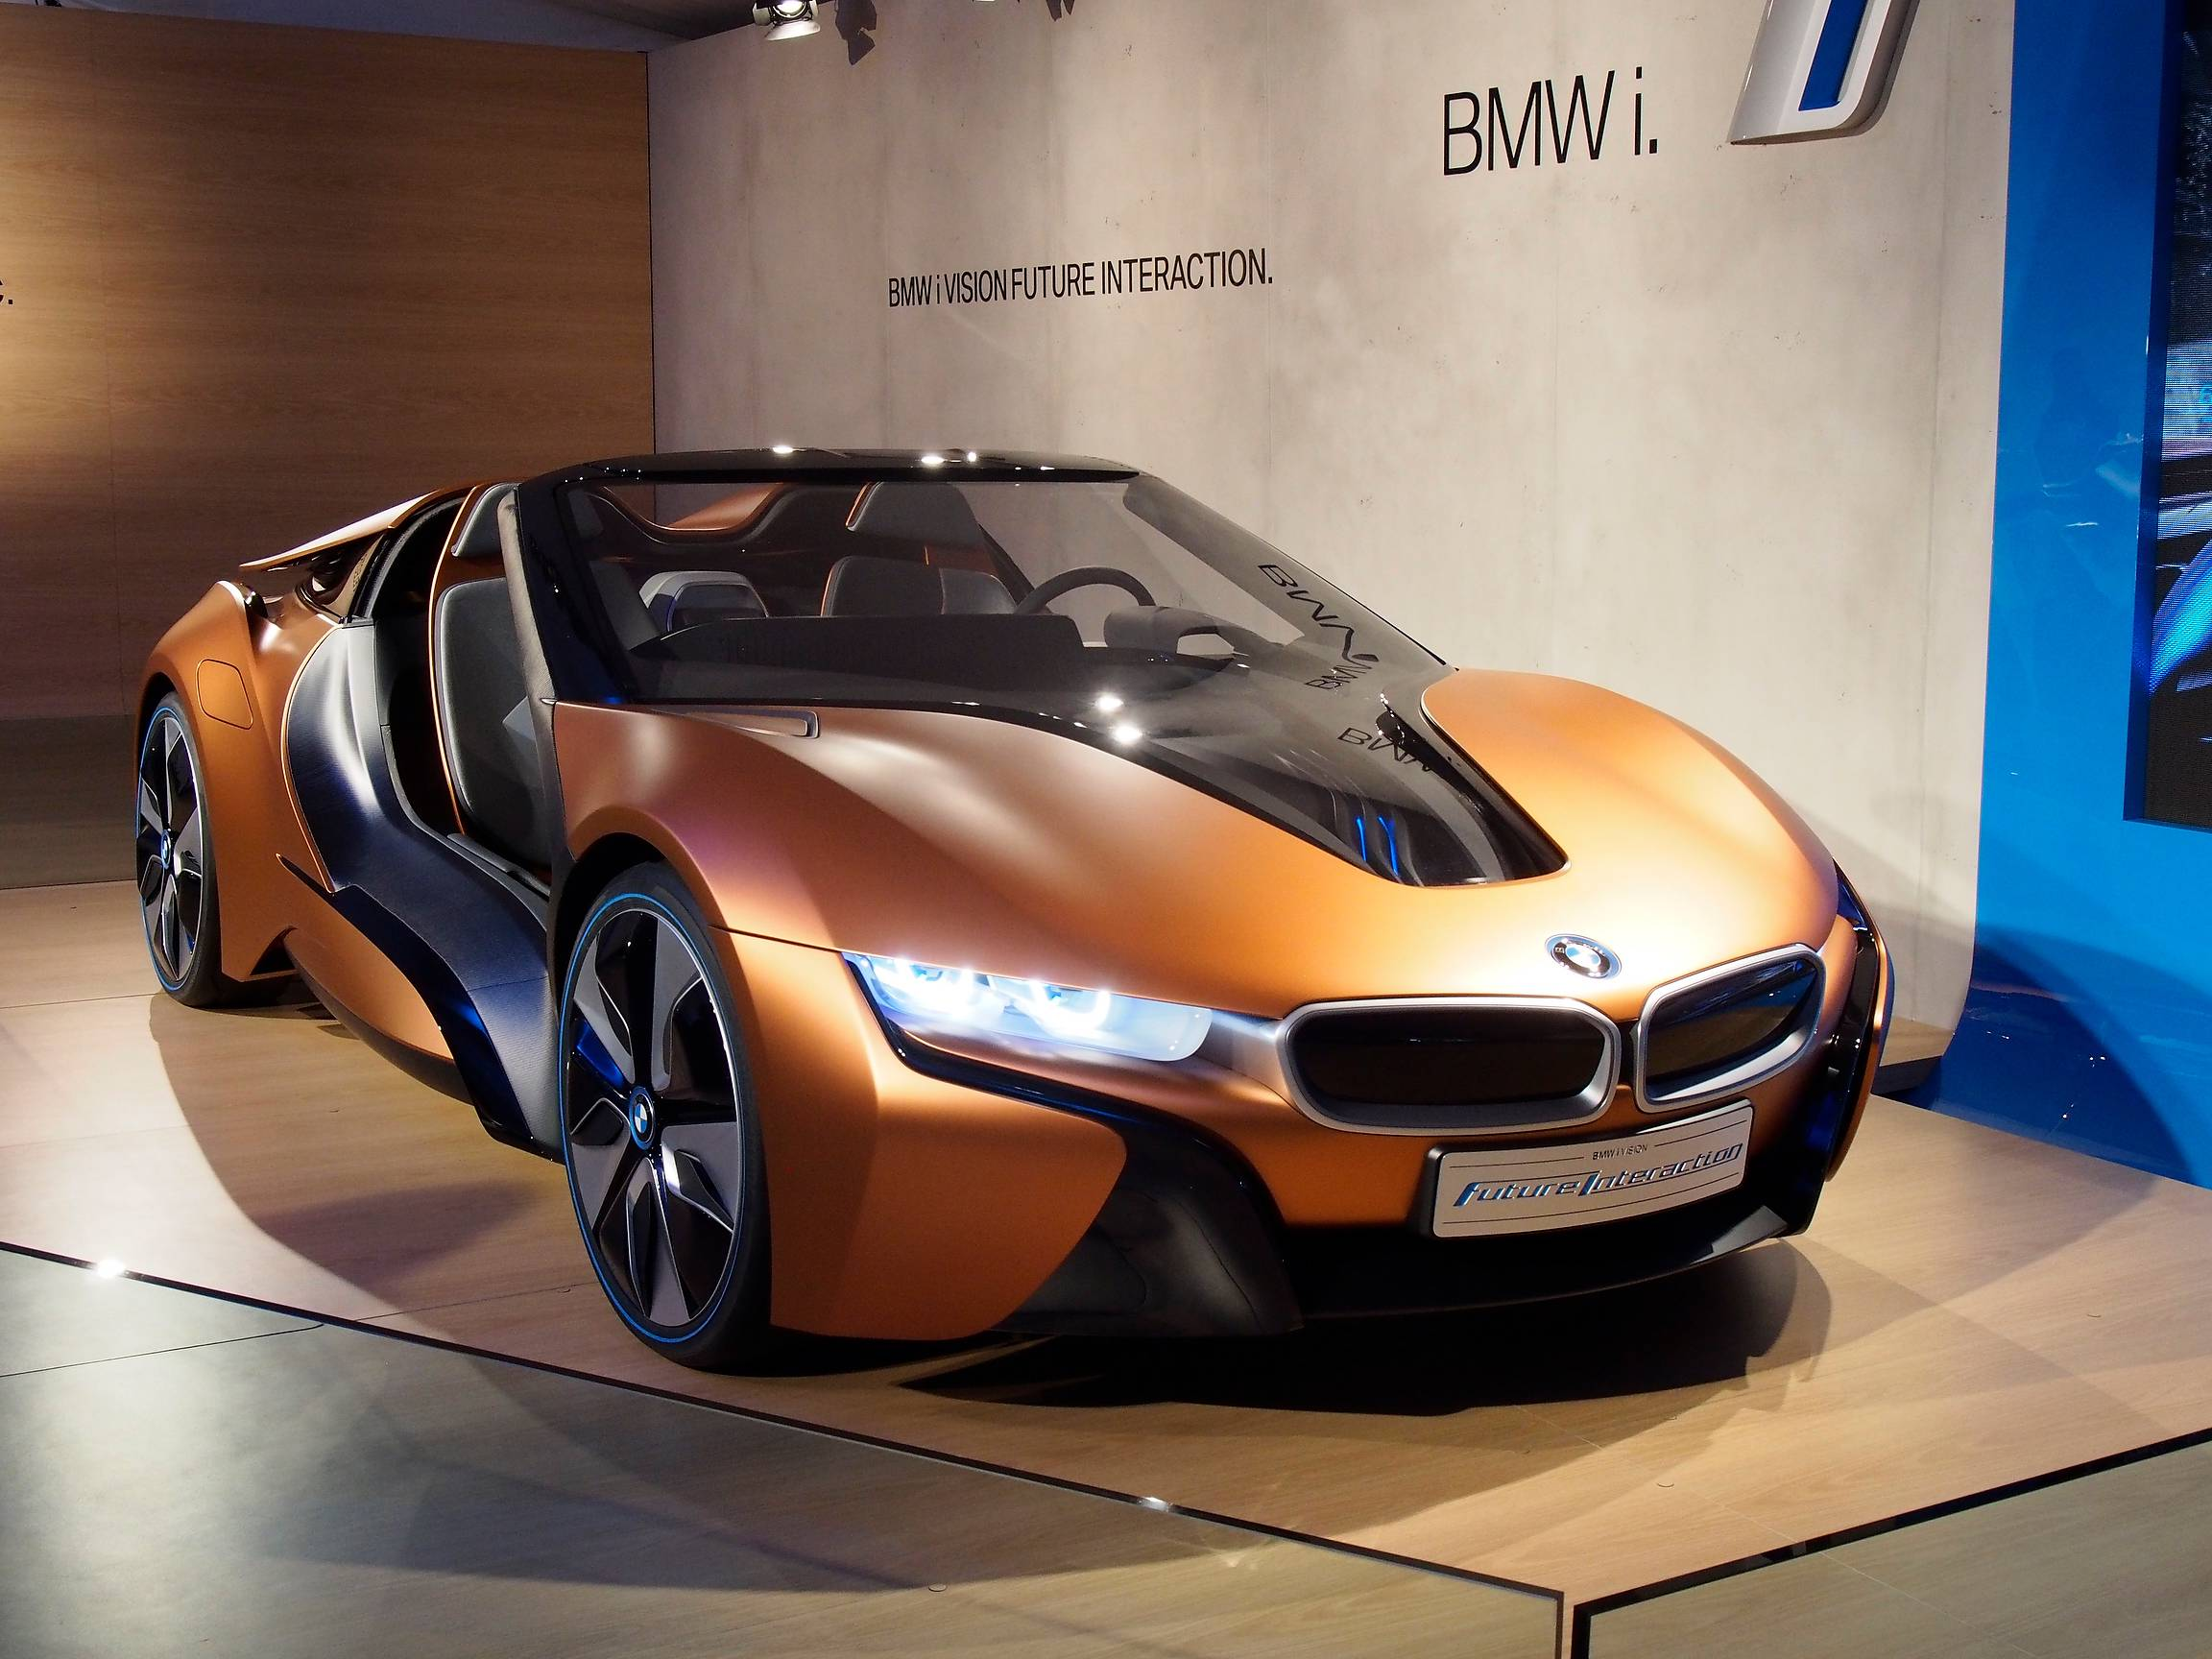 bmw confirms three new i models i8 roadster new i3 i next gtspirit. Black Bedroom Furniture Sets. Home Design Ideas